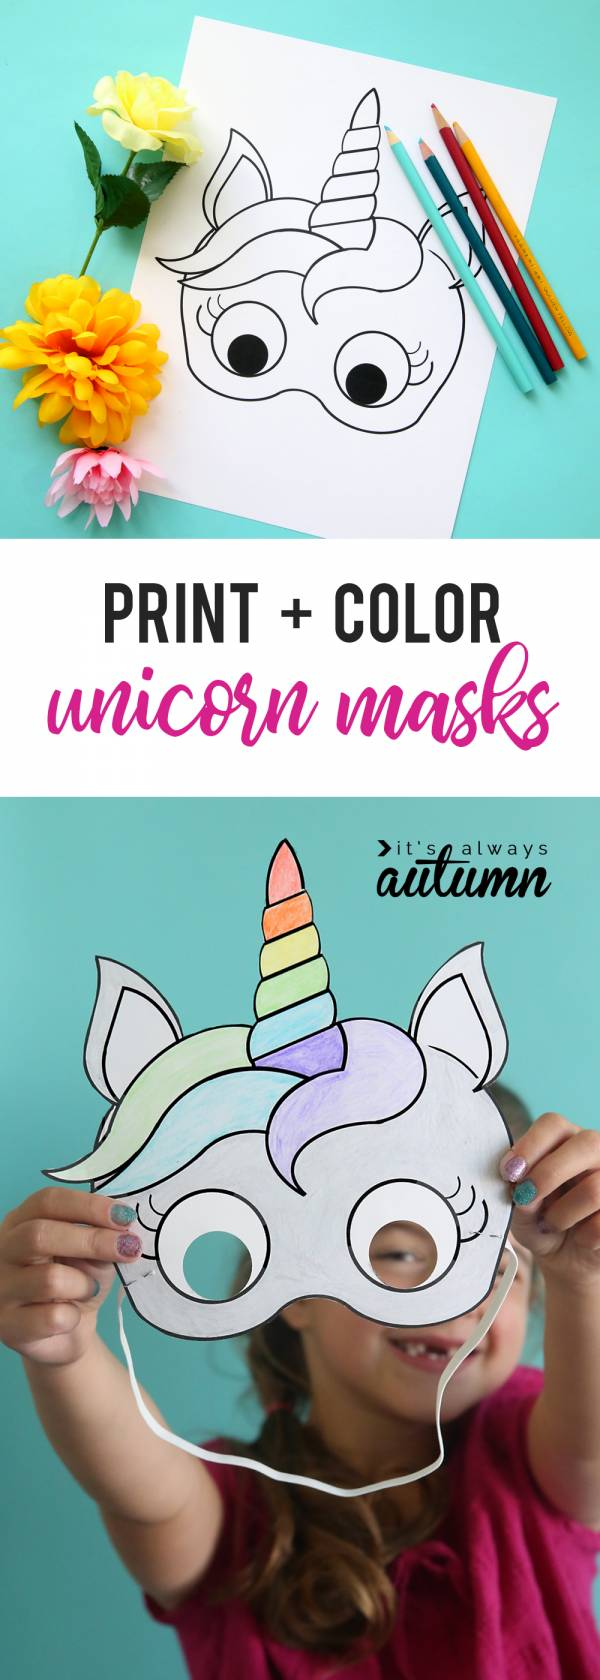 Unicorn Lovers Will Love This Free Printable Mask That They Can Color In Themselves With Its Easy To Create A Unique And Customized